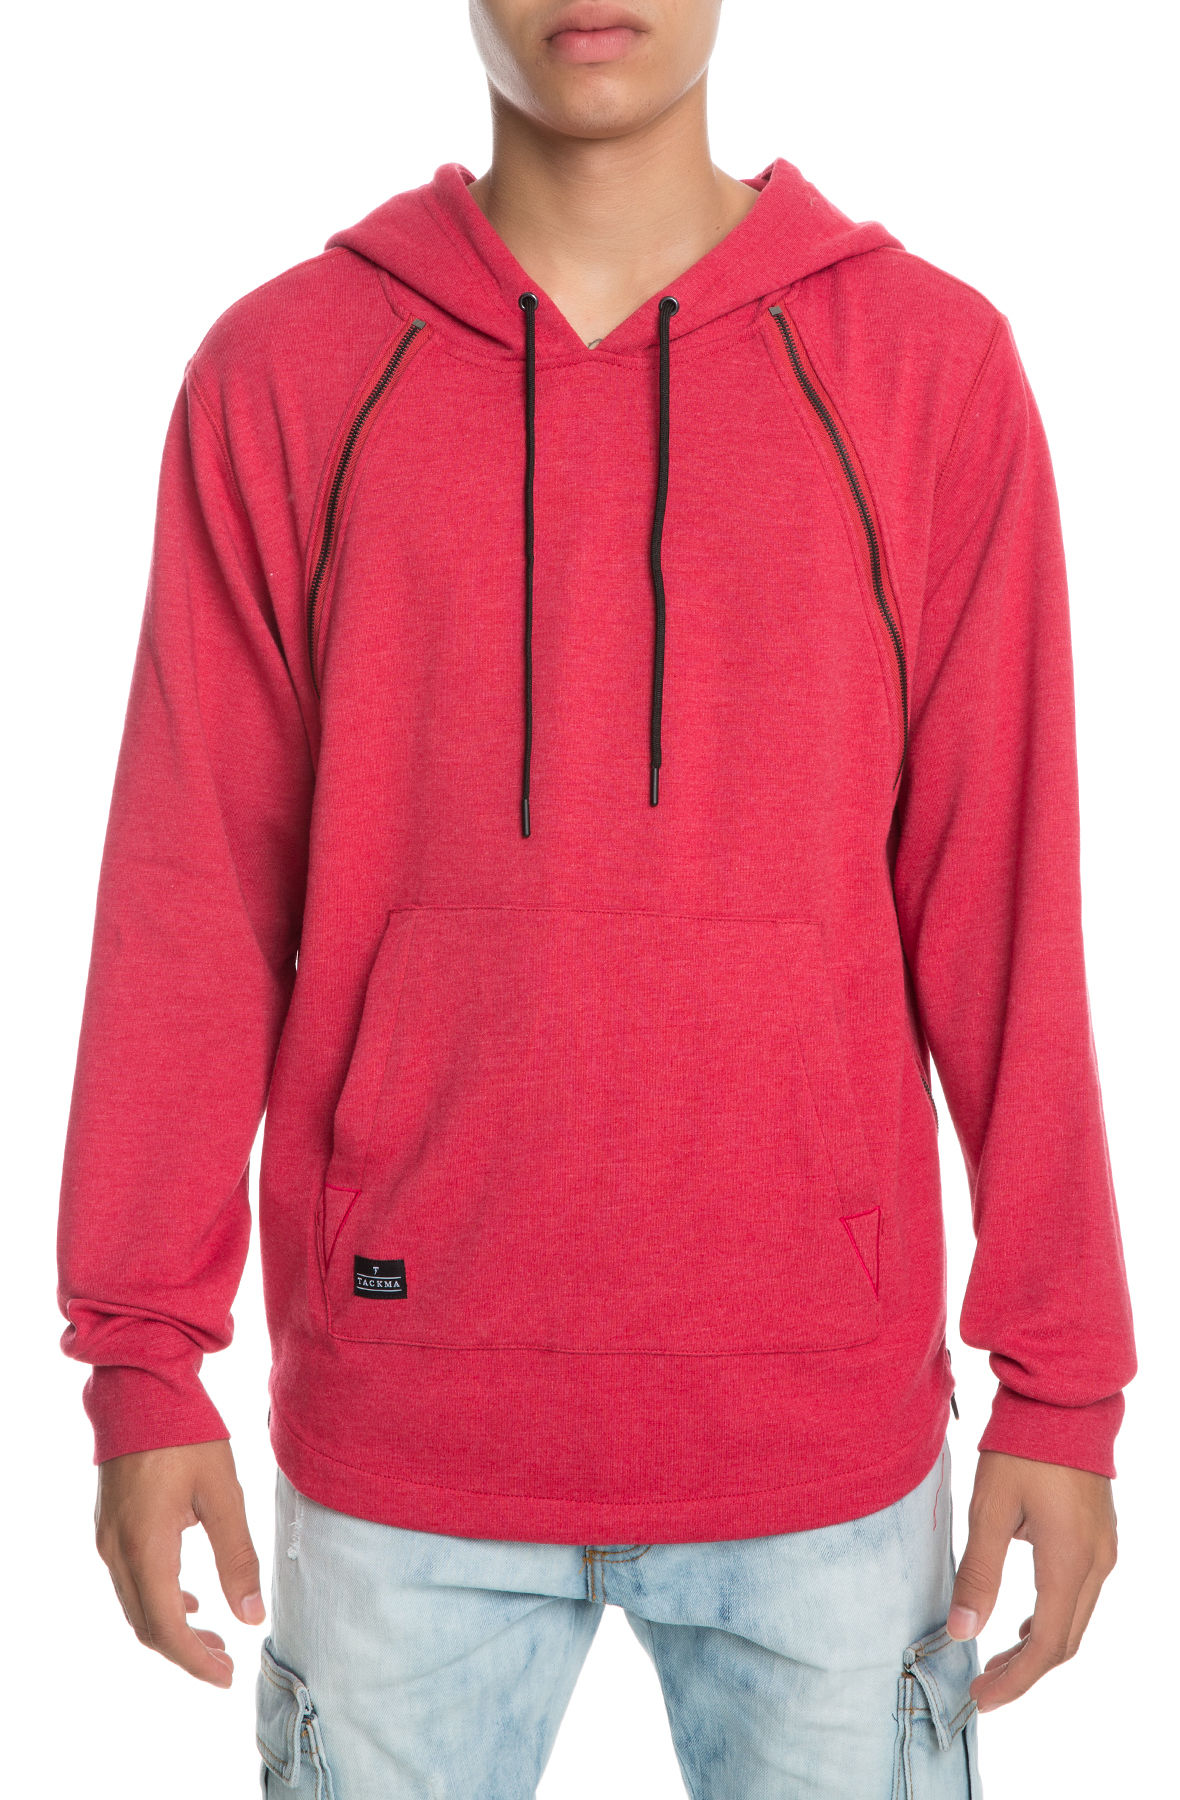 Image of The Stealth Hoodie in Red